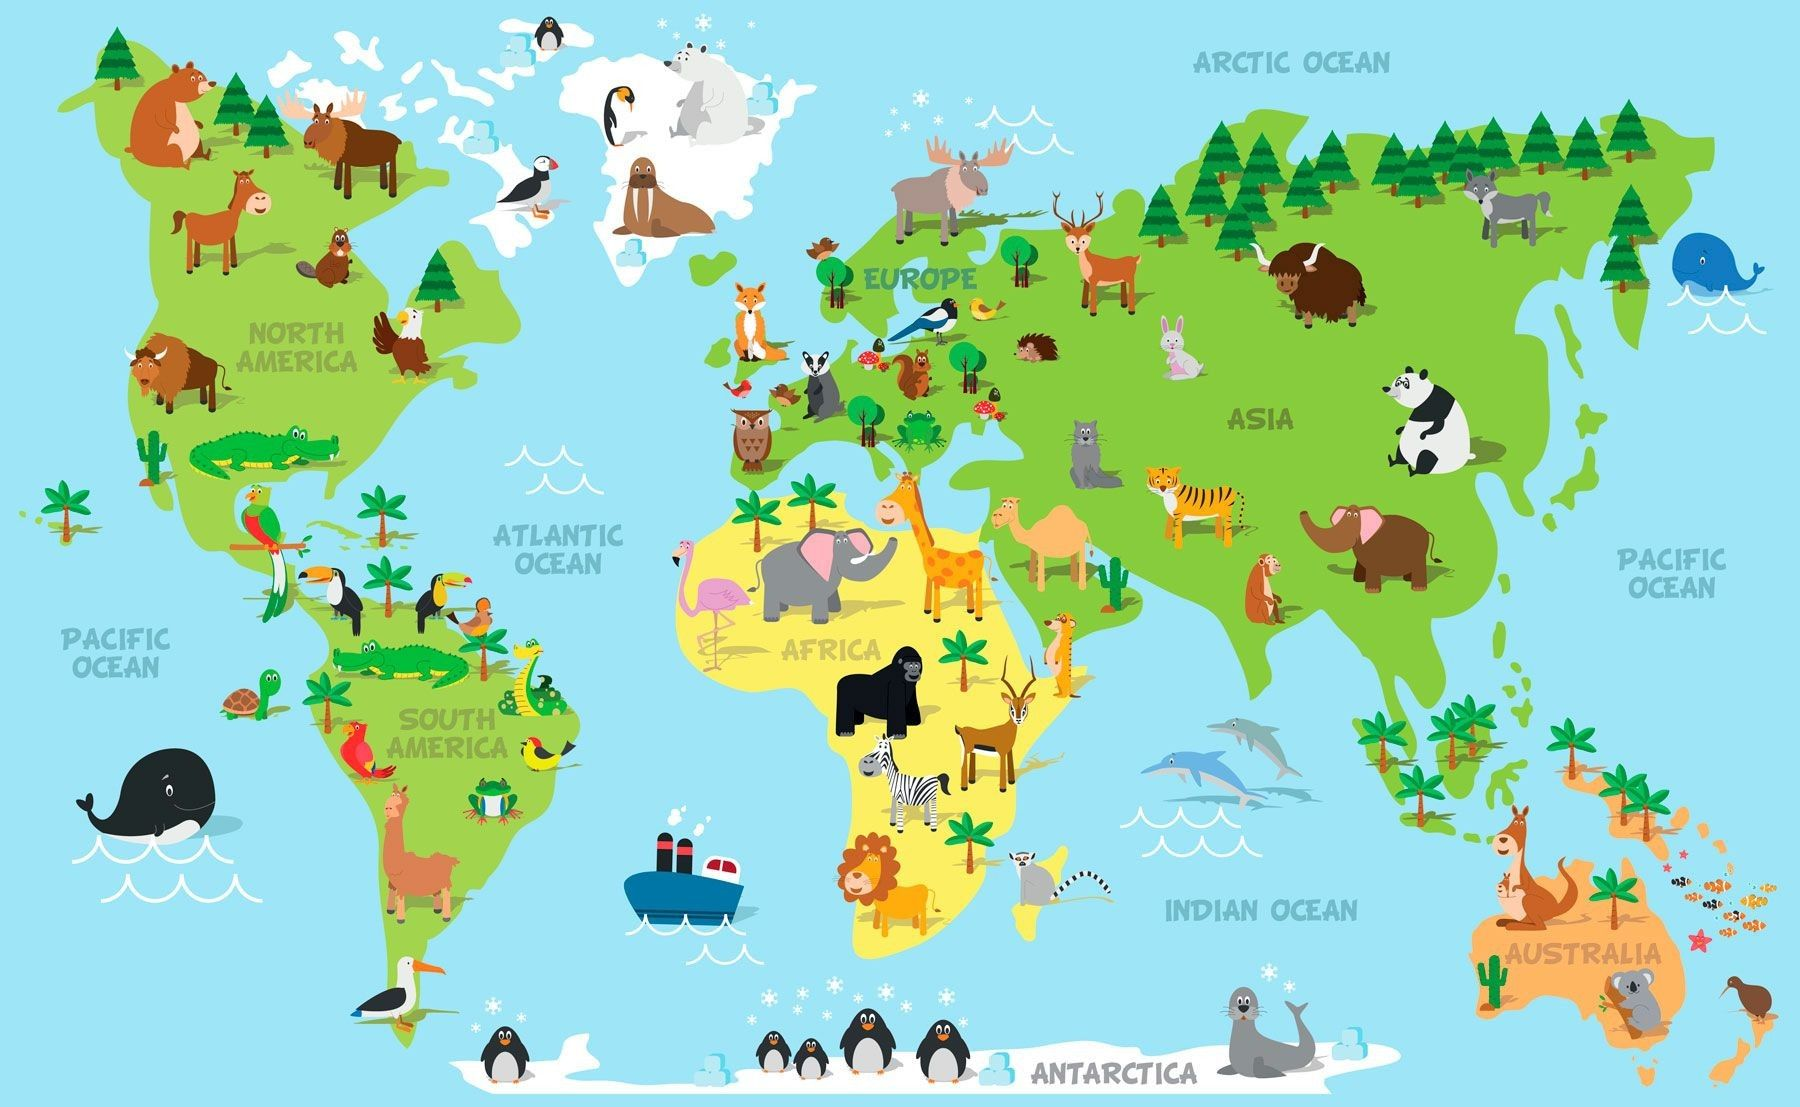 World map with continent names and ocean names new funny cartoon world map with continent names and ocean names new funny cartoon world map children different stock gumiabroncs Choice Image